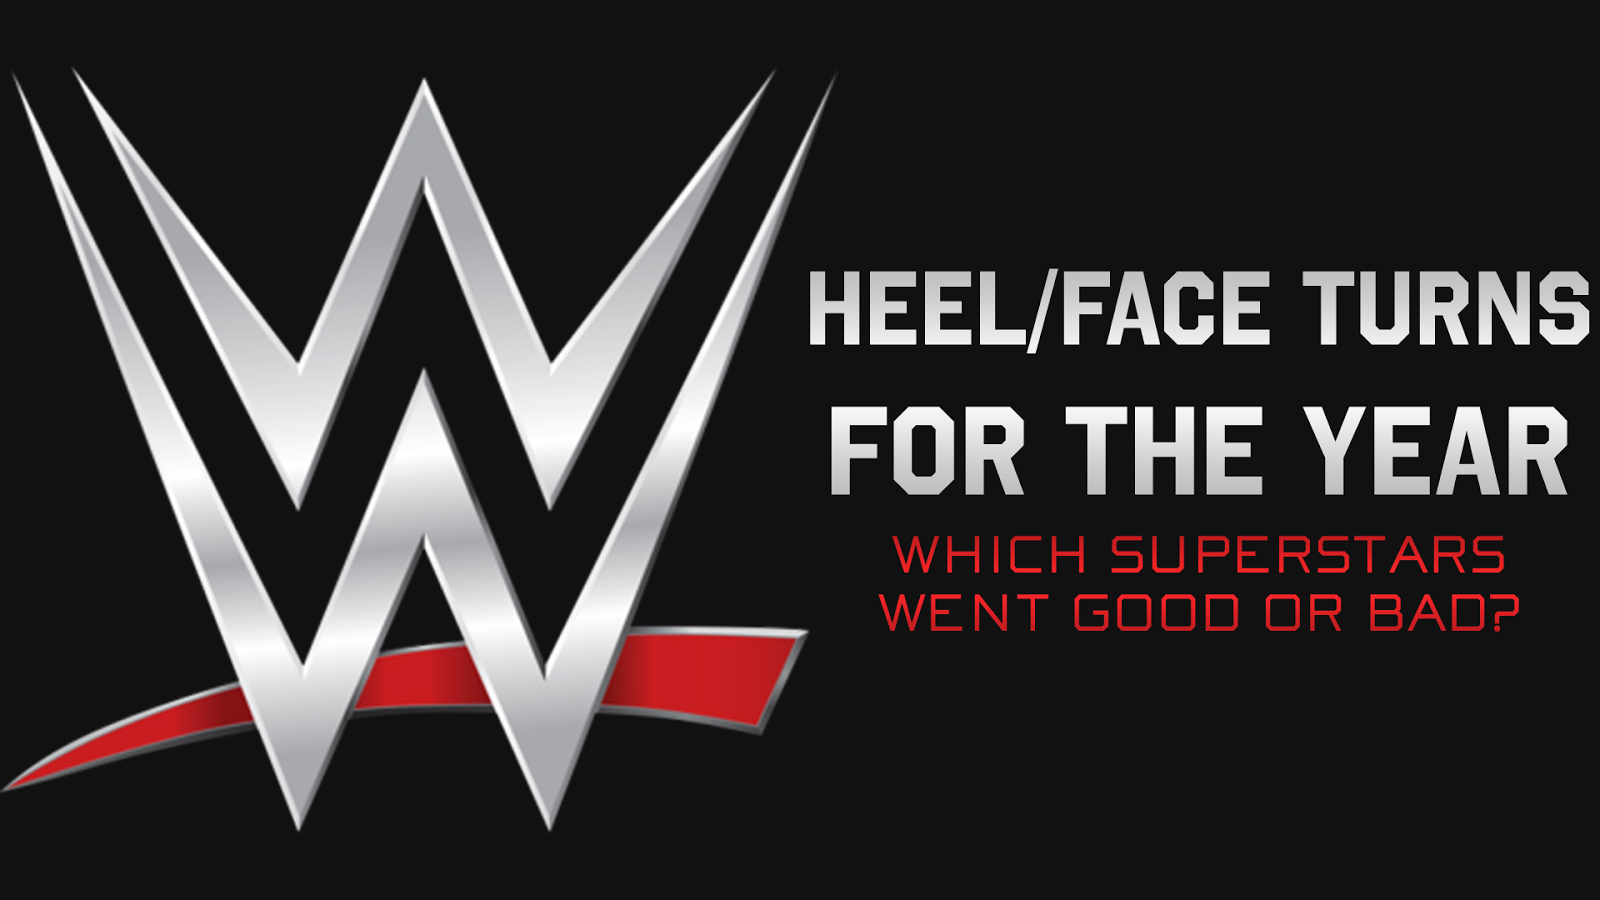 list of babyface turns and heel turns in WWE in 2014